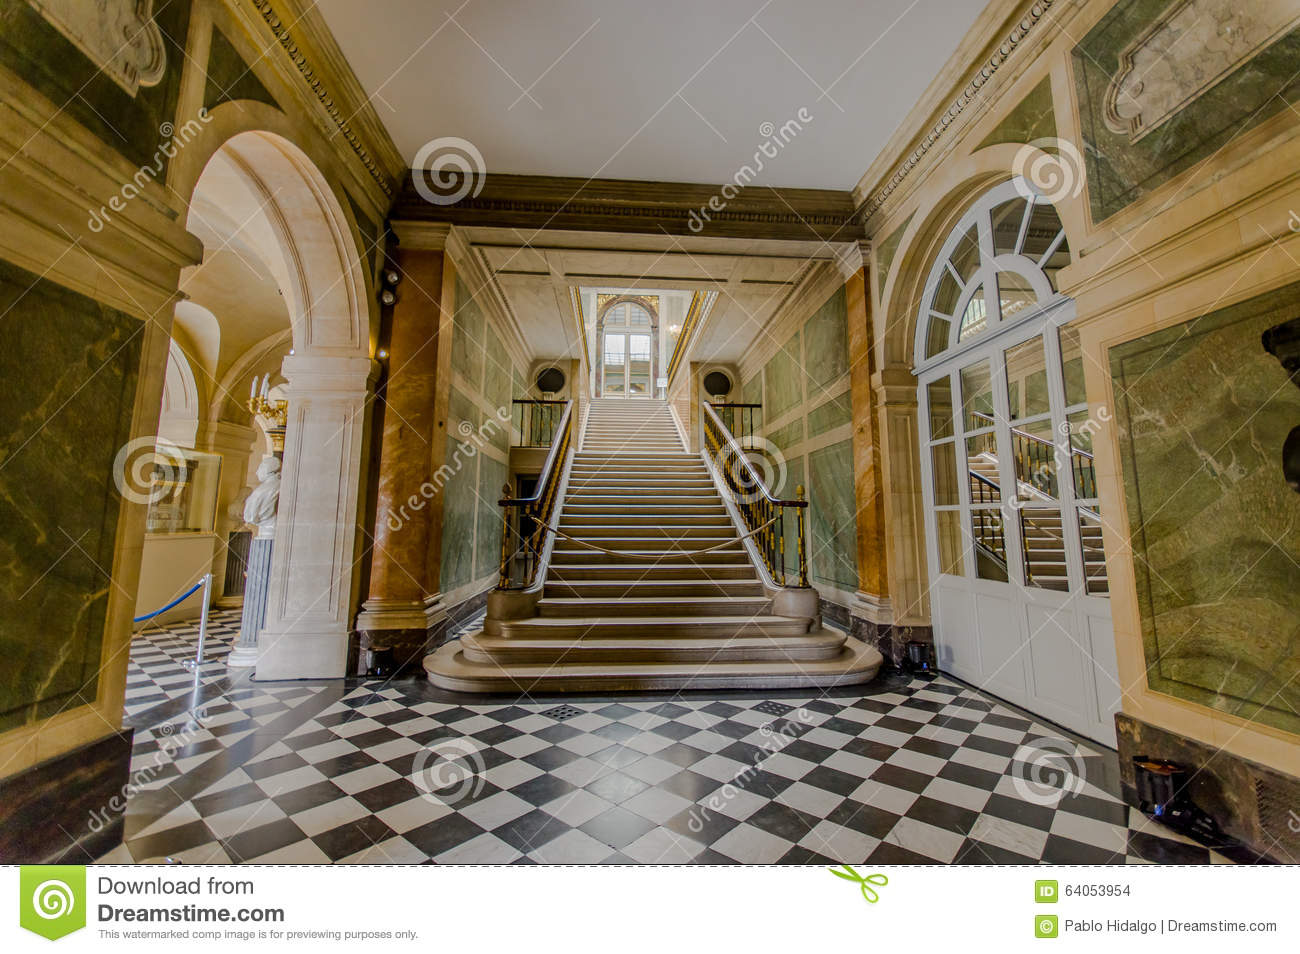 Interiors of chateau de versailles near paris editorial for Interior site